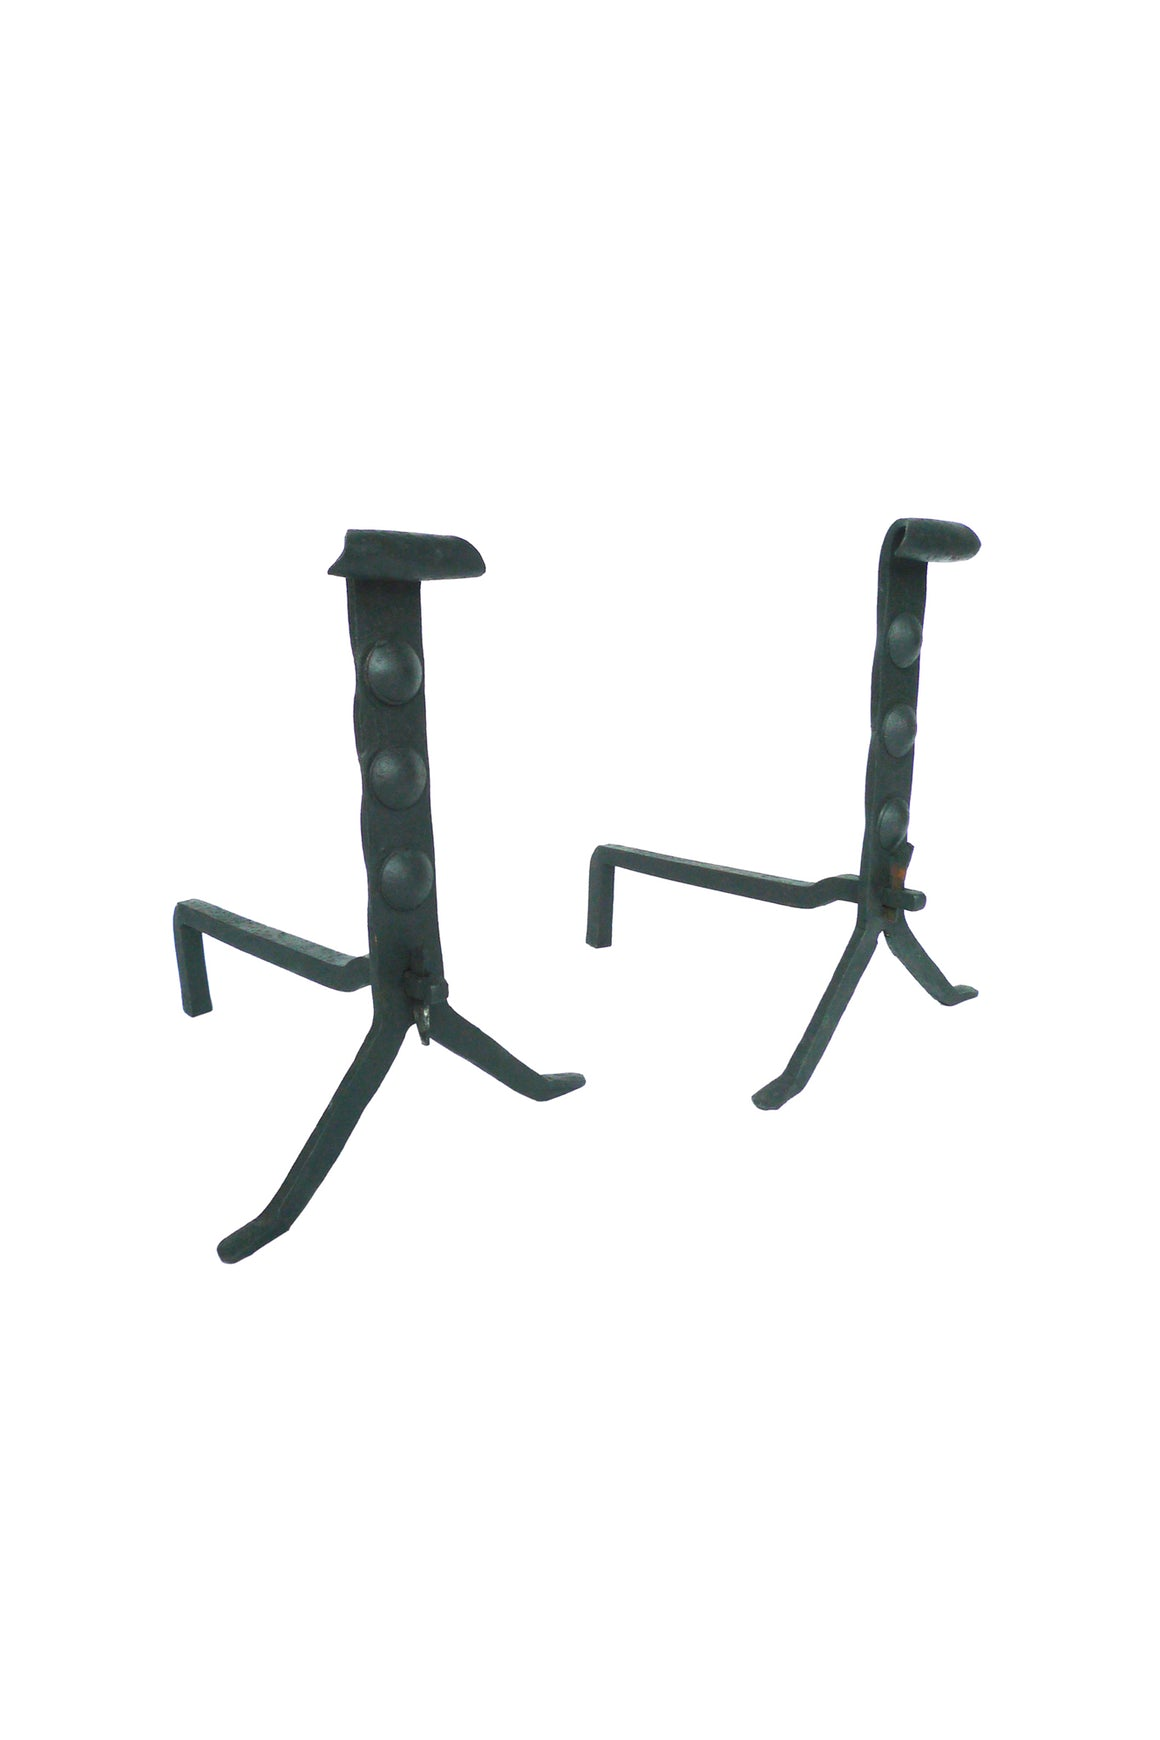 Pair of Antique Wrought Iron Andirons